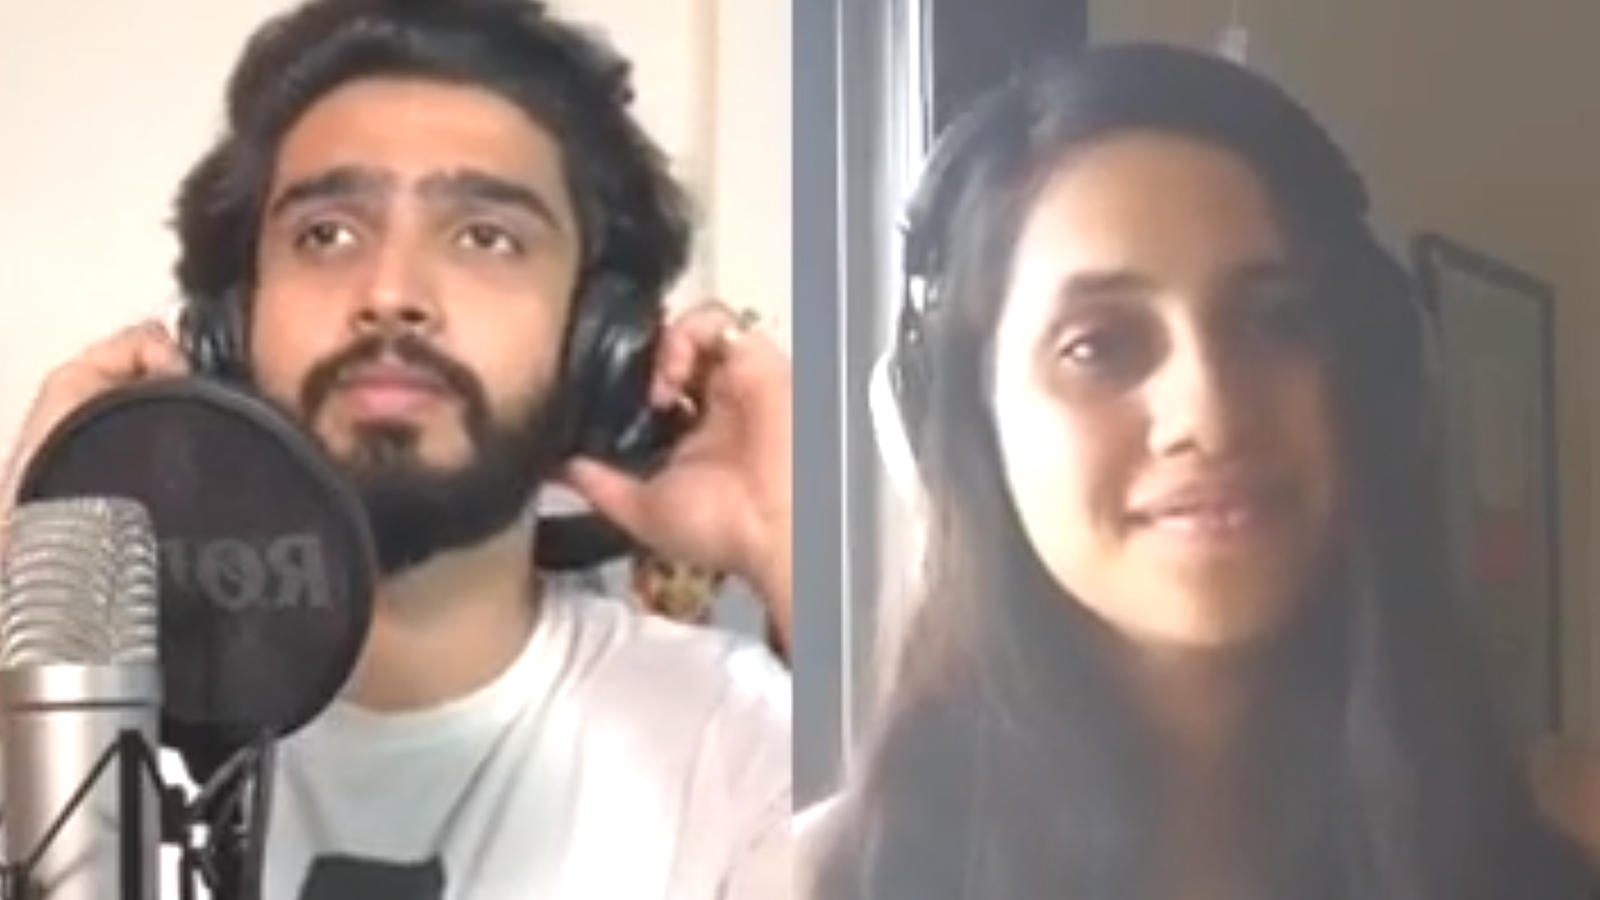 Don't miss out on Amaal Mallik's duet with Nikhita Gandhi on Smule